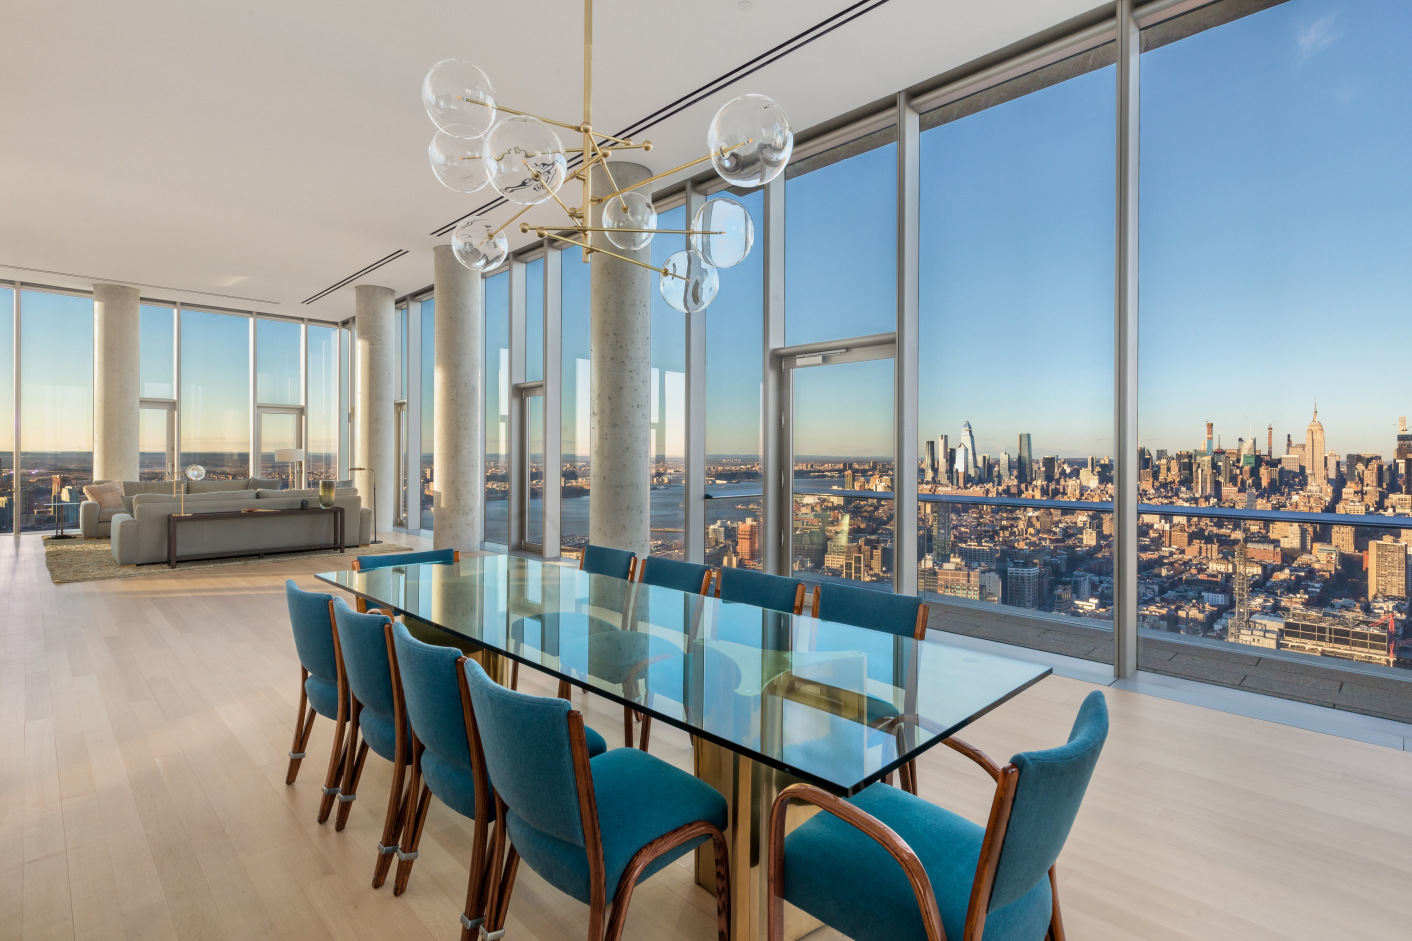 INTRODUCING THE LARGEST PENTHOUSE IN 56 LEONARD  Towering over downtown Manhattan, this penthouse in the sky is perched atop the iconic 56 Leonard Street, a pillar of historic Tribeca. The home's 360 degree views of Manhattan are unrivaled and indescribable. Spanning 6,400 square feet of space and three private terraces, this distinctive residence is the largest floor plate in the building.  Through a private key-locked elevator, enter the 53rd floor where you are welcomed by soaring 14-foot ceilings and walls of windows. This glass enclosed chateau reveals a backdrop of Manhattan stretching north, east, west, and south. The lavish great room is flanked by a wood-burning fireplace and west-facing terrace with sweeping water views.  Wrapping around to the right of the great room is a formal dining area with breathtaking northern views all the way up to the Empire State Building. Continuing past the dining area is an enormous chef's kitchen, uniquely crafted by Herzog & de Meuron featuring an Absolute Black granite grand piano-shaped island and custom-sculpted fully-vented range hood. Satin-glass etched cabinetry surrounds a modern selection of premium Miele and Sub-Zero appliances. Off the kitchen and dining areas is an unprecedented 1,000+ square foot wraparound terrace where one can throw extravagant parties and ogle the staggering views north and east across the city.  Sunlight bounces off the Appalachian white oak flooring throughout the home, illuminating all four bedrooms and showcasing a superb, unparalleled design. The master suite revels in the beauty of the city below, with triple exposures north, east, and south offering jaw-dropping views of the East River and One World Trade Center. The expansive 17 x 36 bedroom features a seating area, three large walk-in closets, an en-suite bath, and access to the wraparound terrace. The five-piece master bath is appointed with travertine floors and Thassos marble mosaic tile walls. The Herzog & de Meuron custom desig